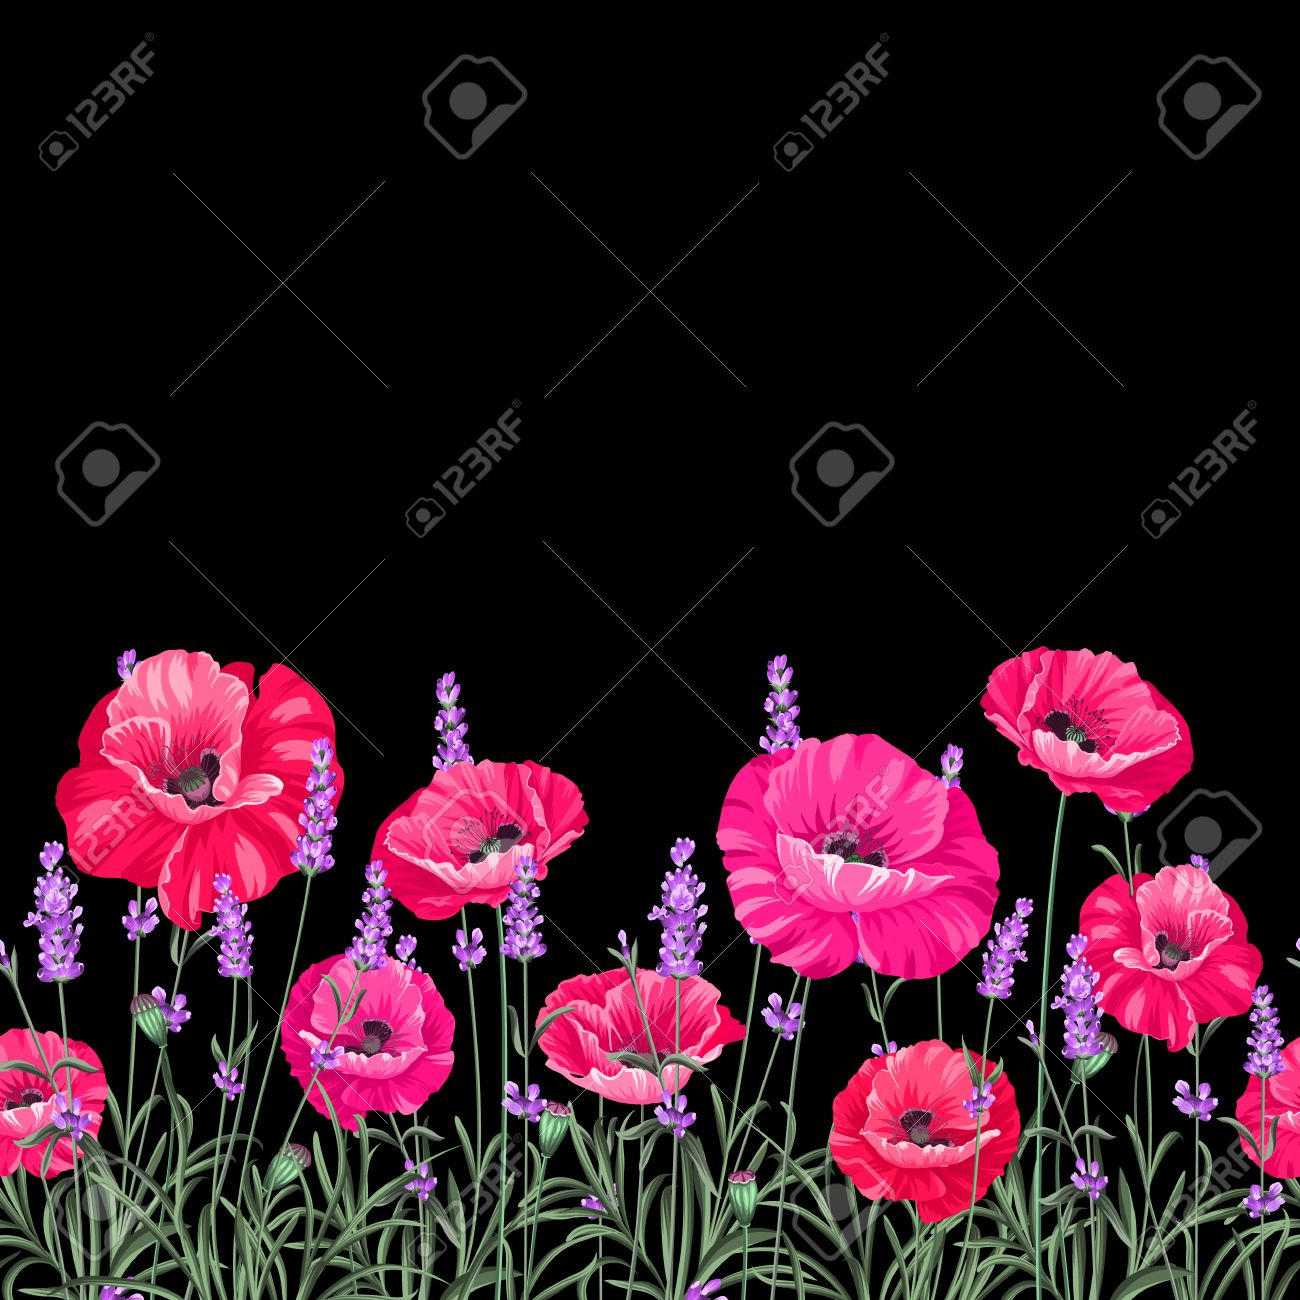 Pattern of poppy flowers over black background. Luxurious color poppy flowers. Textile for a vintage label design. Vector illustration. - 54294363